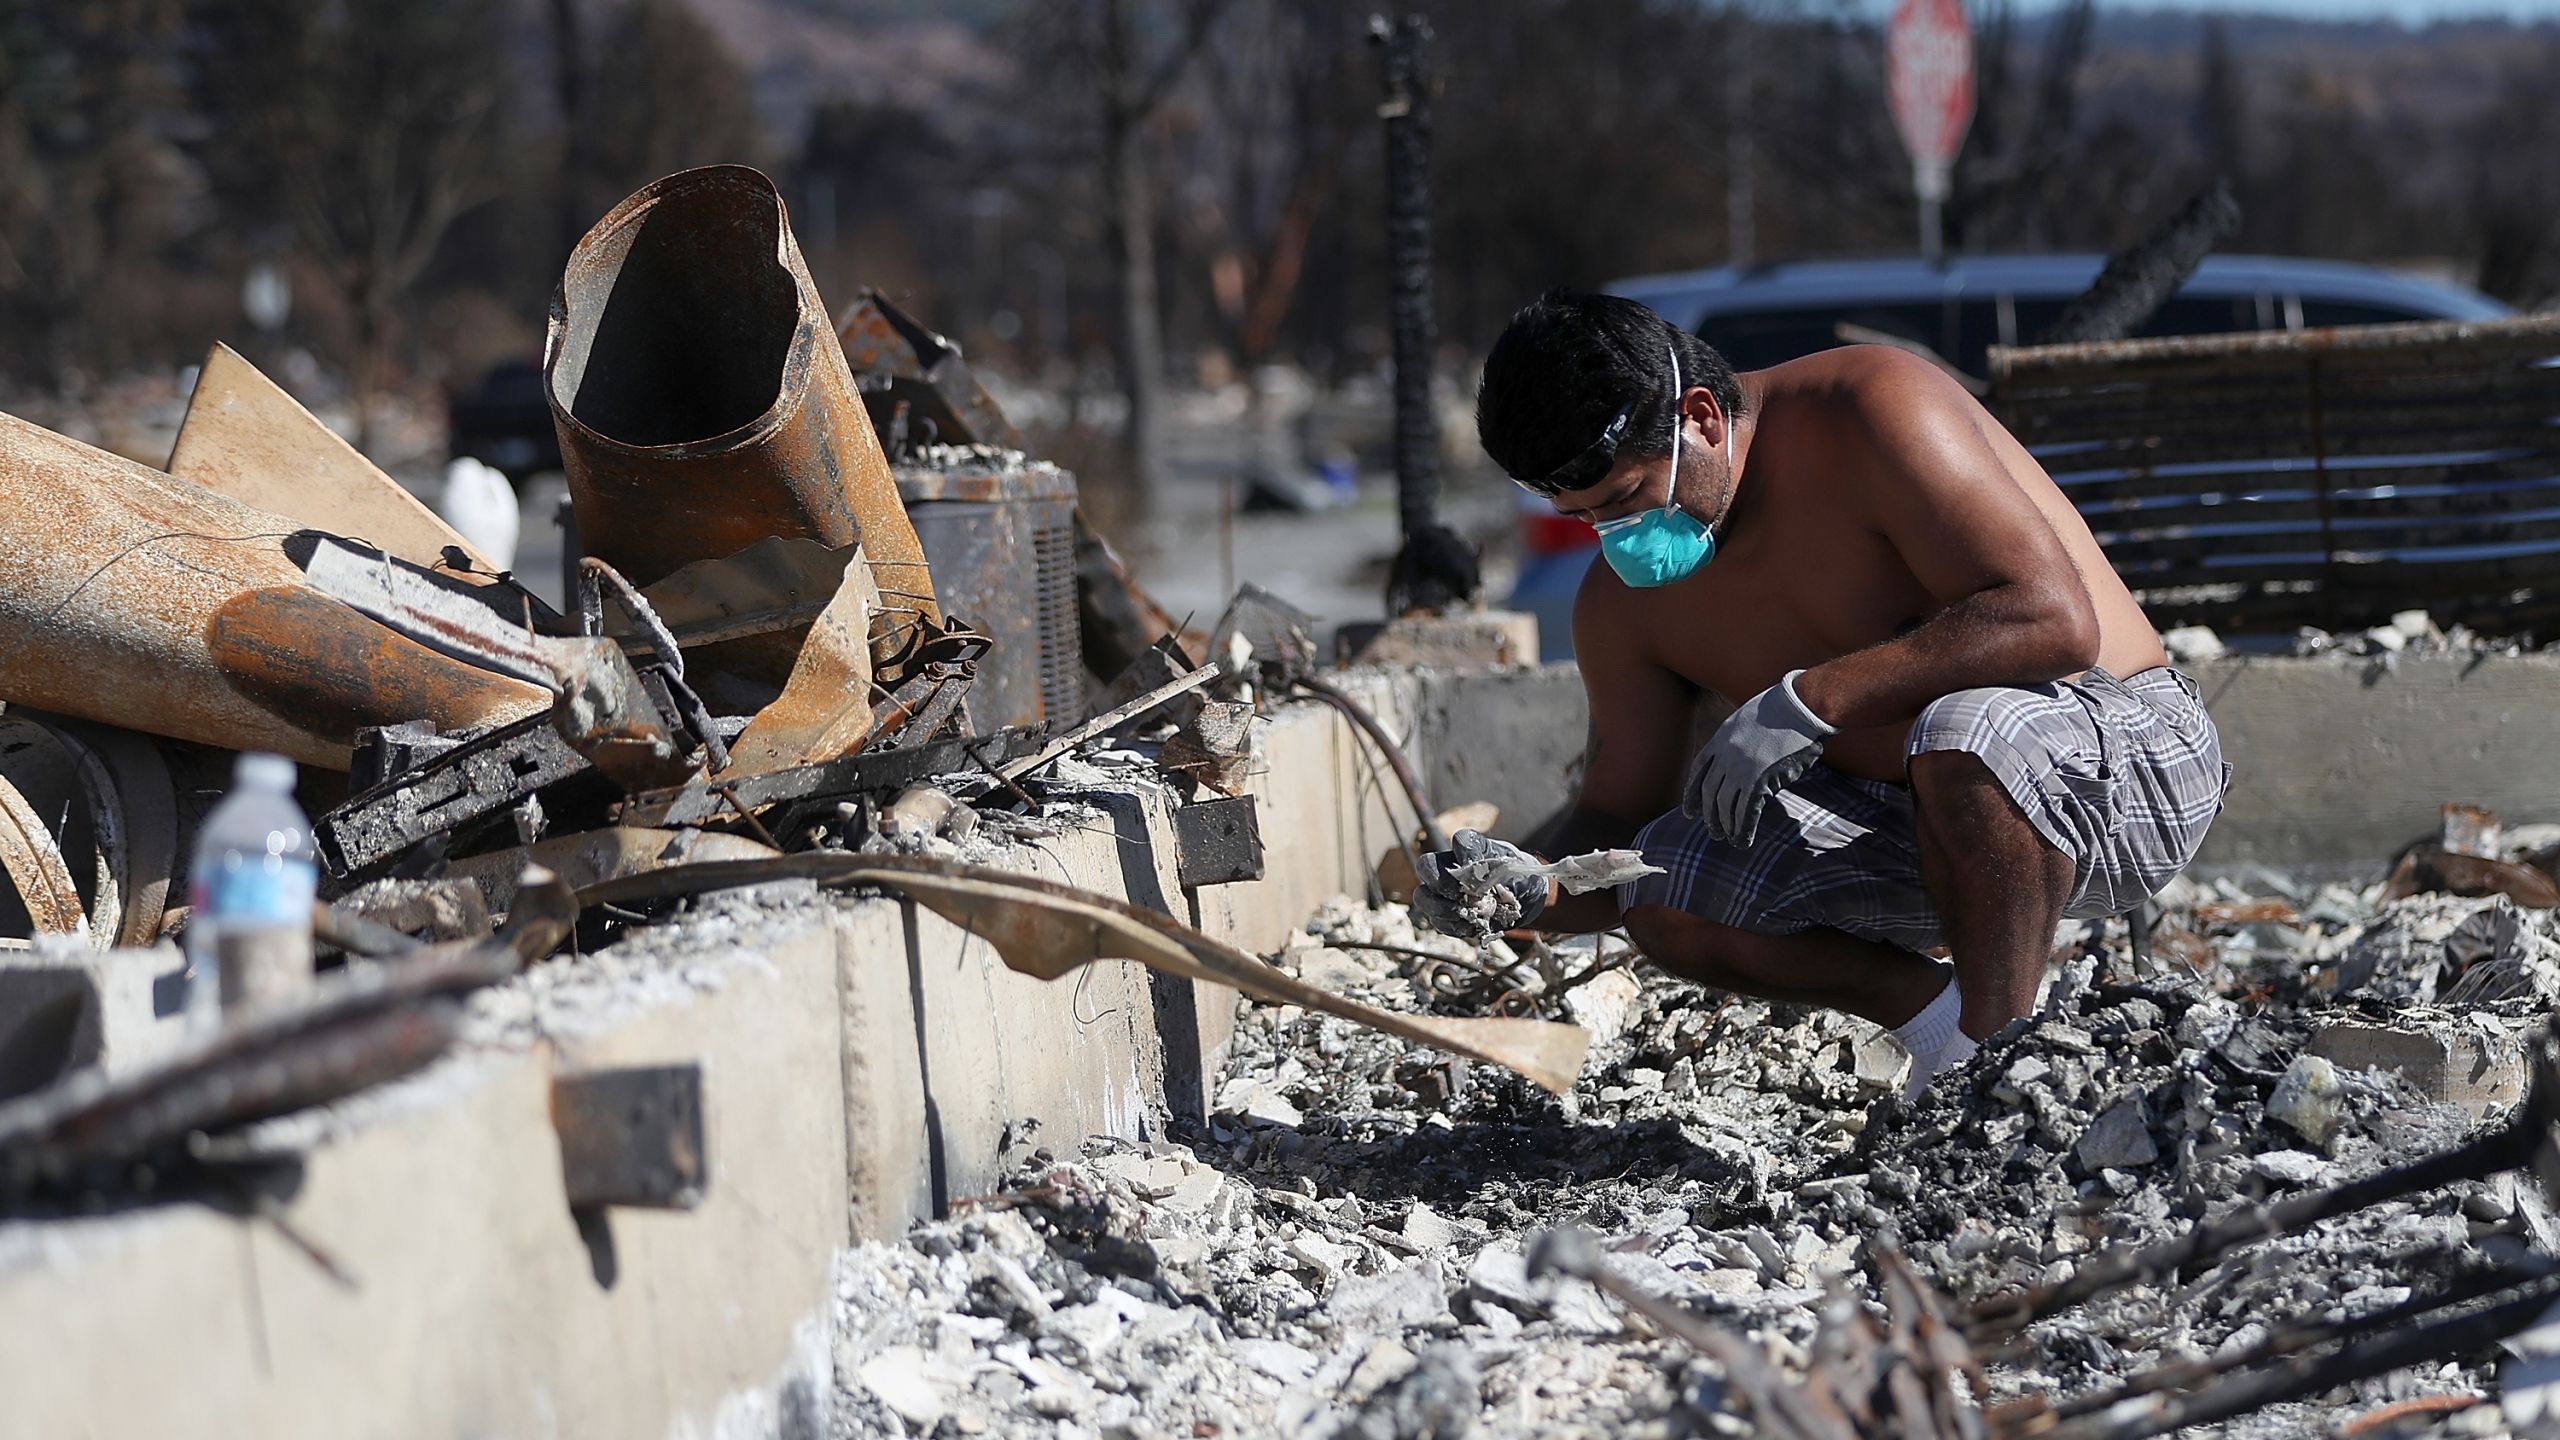 Ben Hernandez sifts through the remains of his Coffey Park home that was destroyed by the Tubbs Fire on Oct. 23, 2017, in Santa Rosa. (Credit: Justin Sullivan / Getty Images)